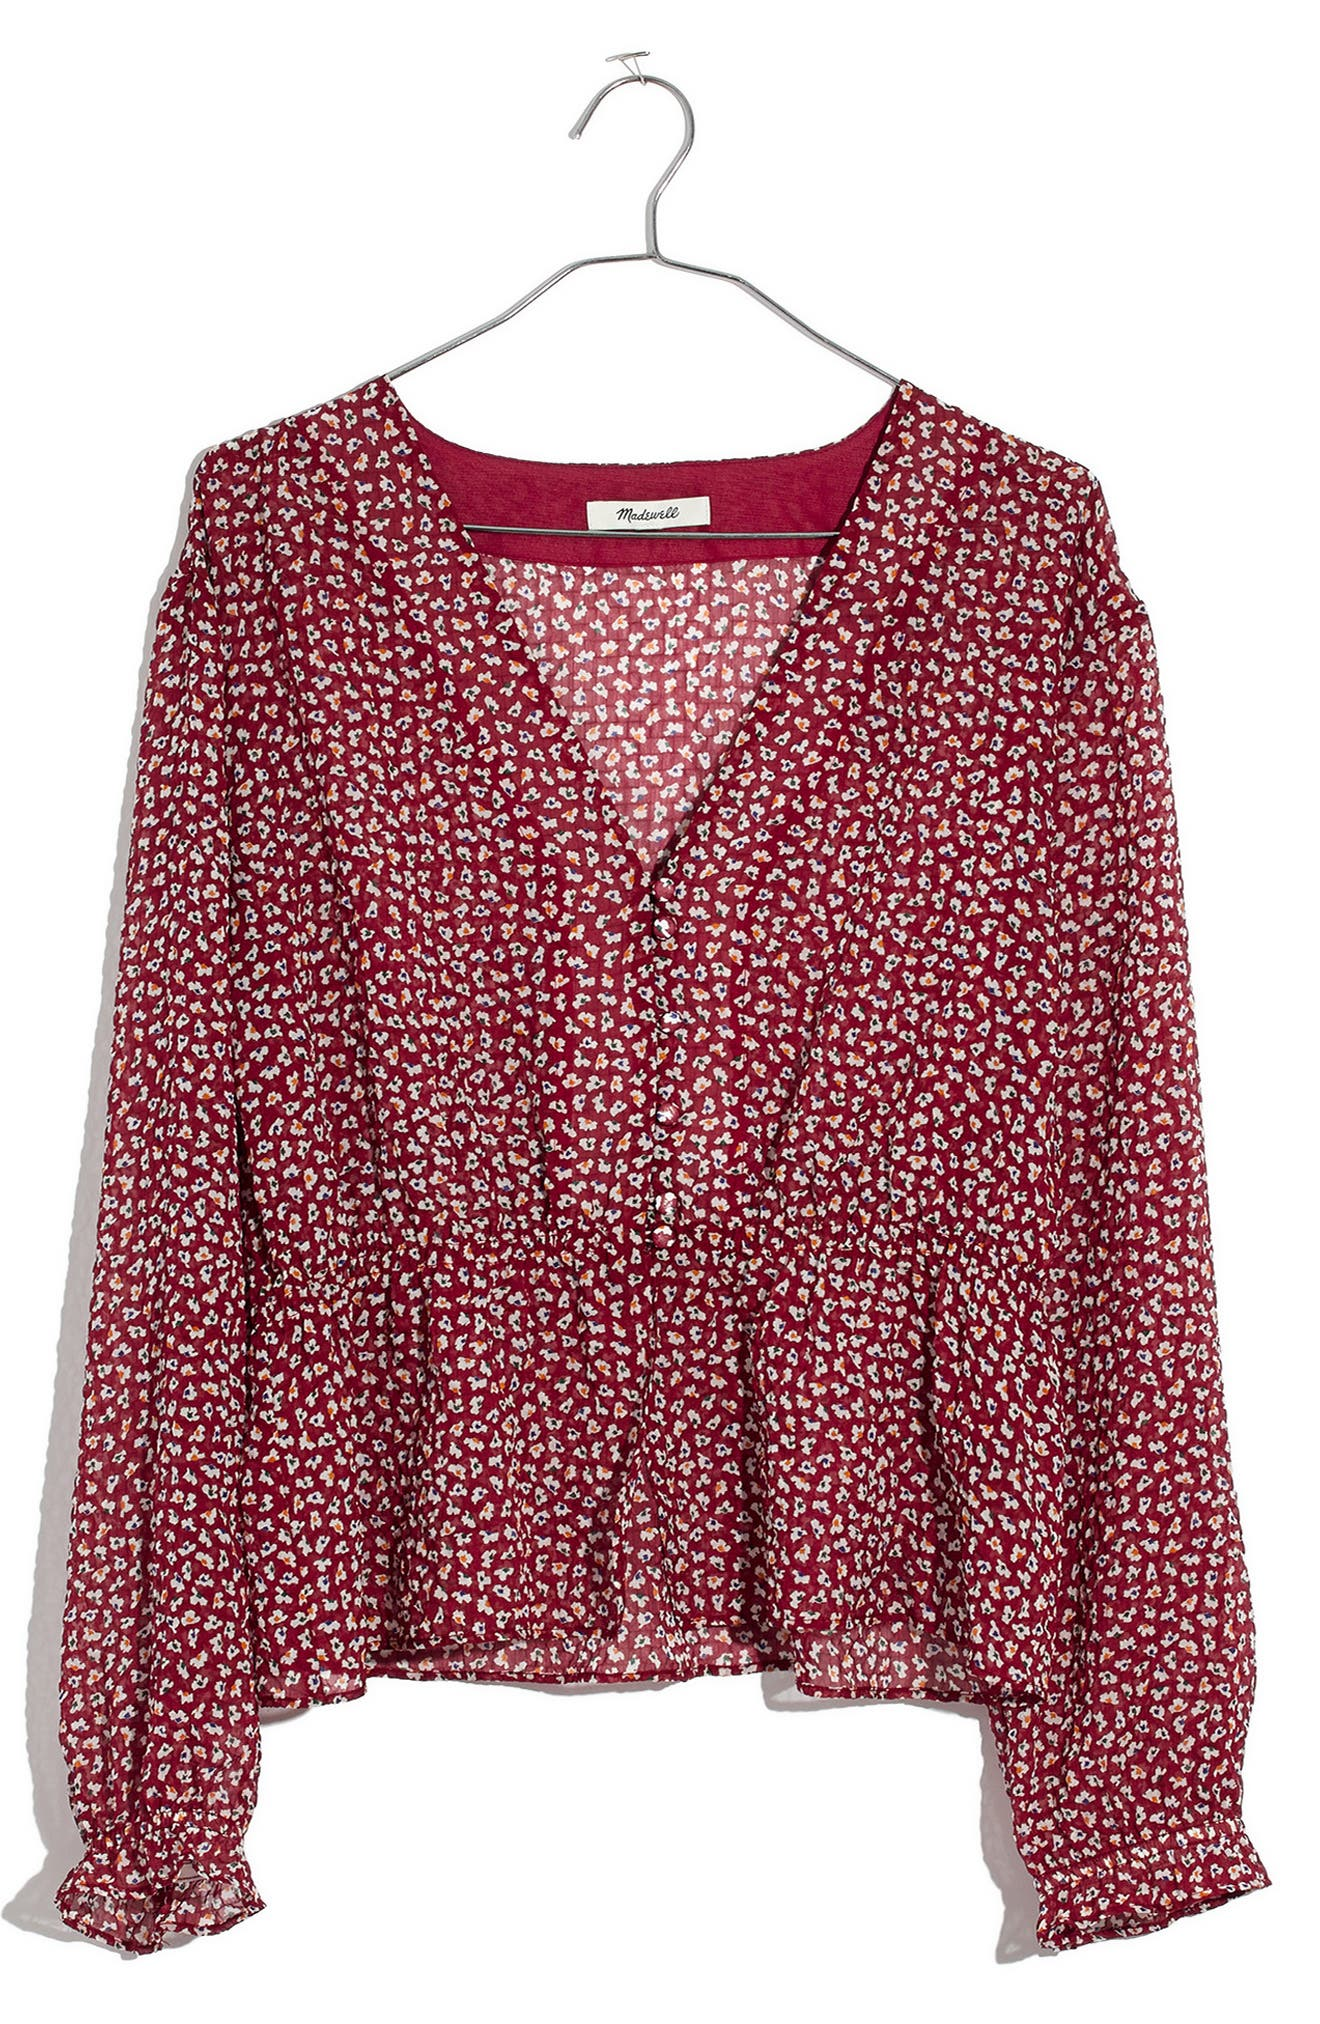 MADEWELL, Overture Top, Alternate thumbnail 5, color, CONFETTI BRIGHT IVORY